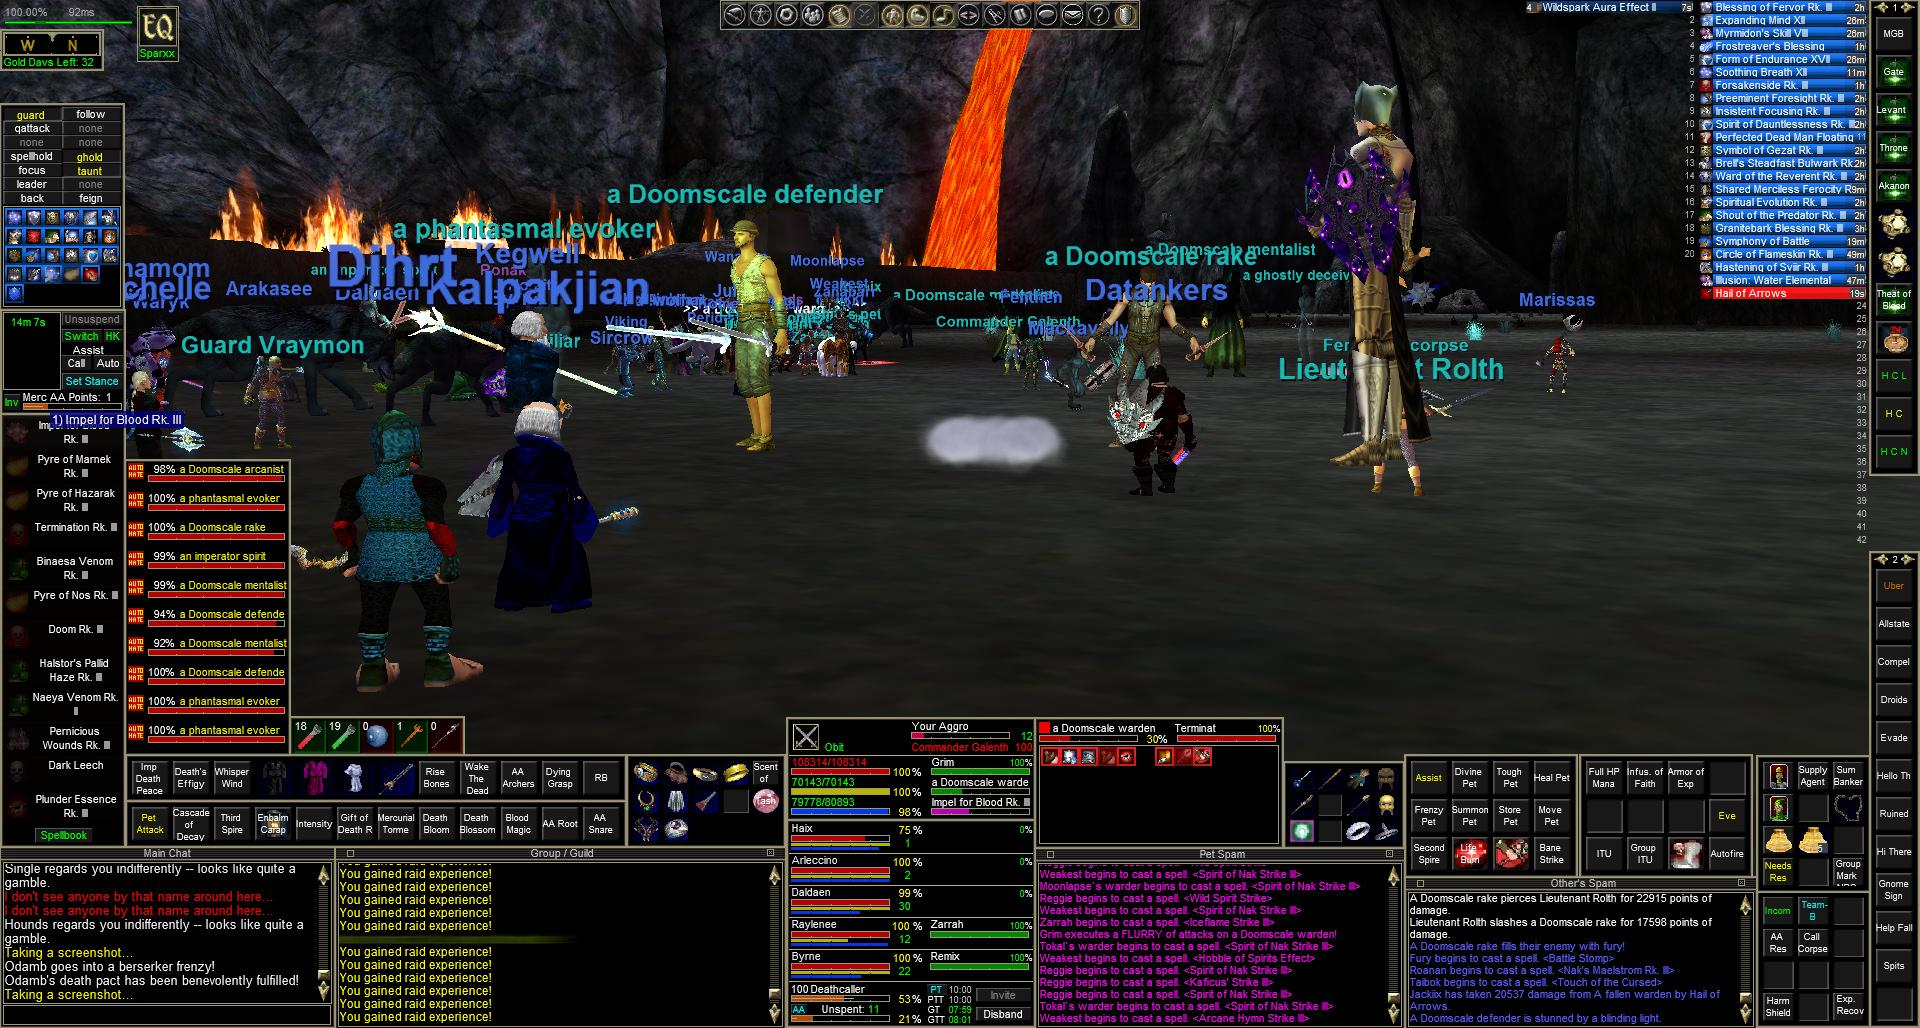 Everquest extra spell slot aa : Online casino slot uniforms